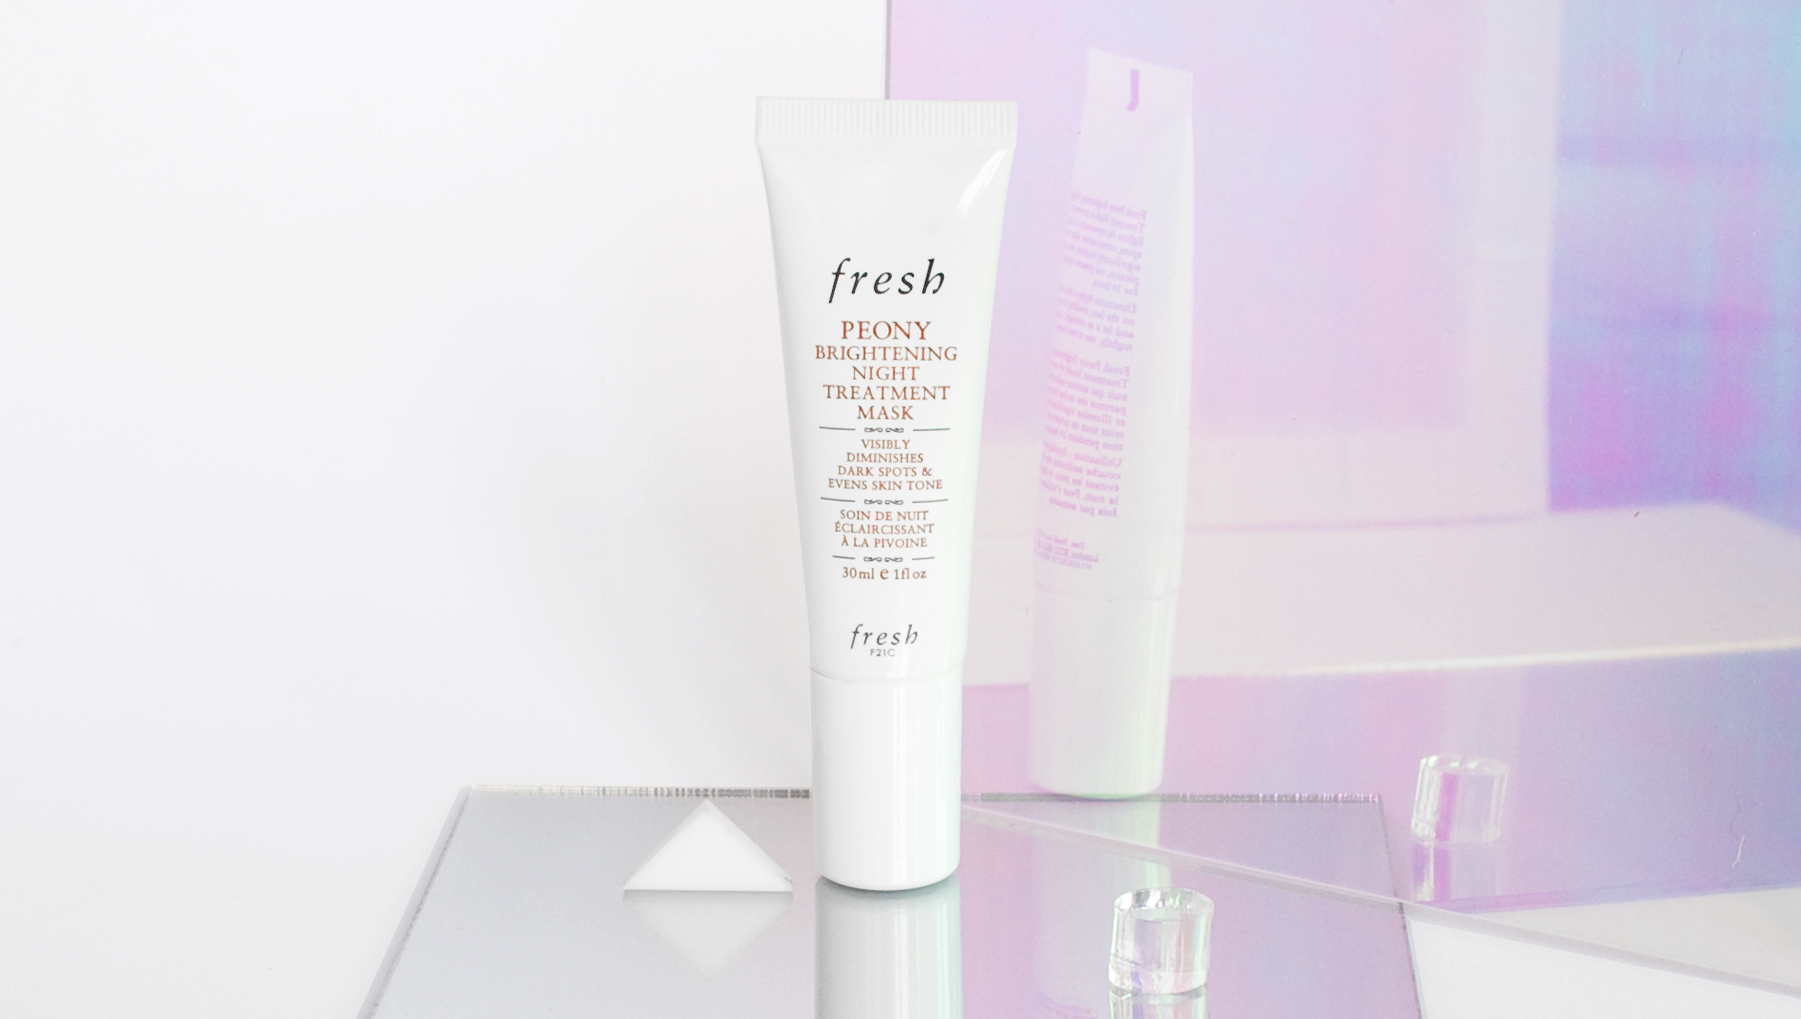 Peony Brightening Night Treatment Mask, $65